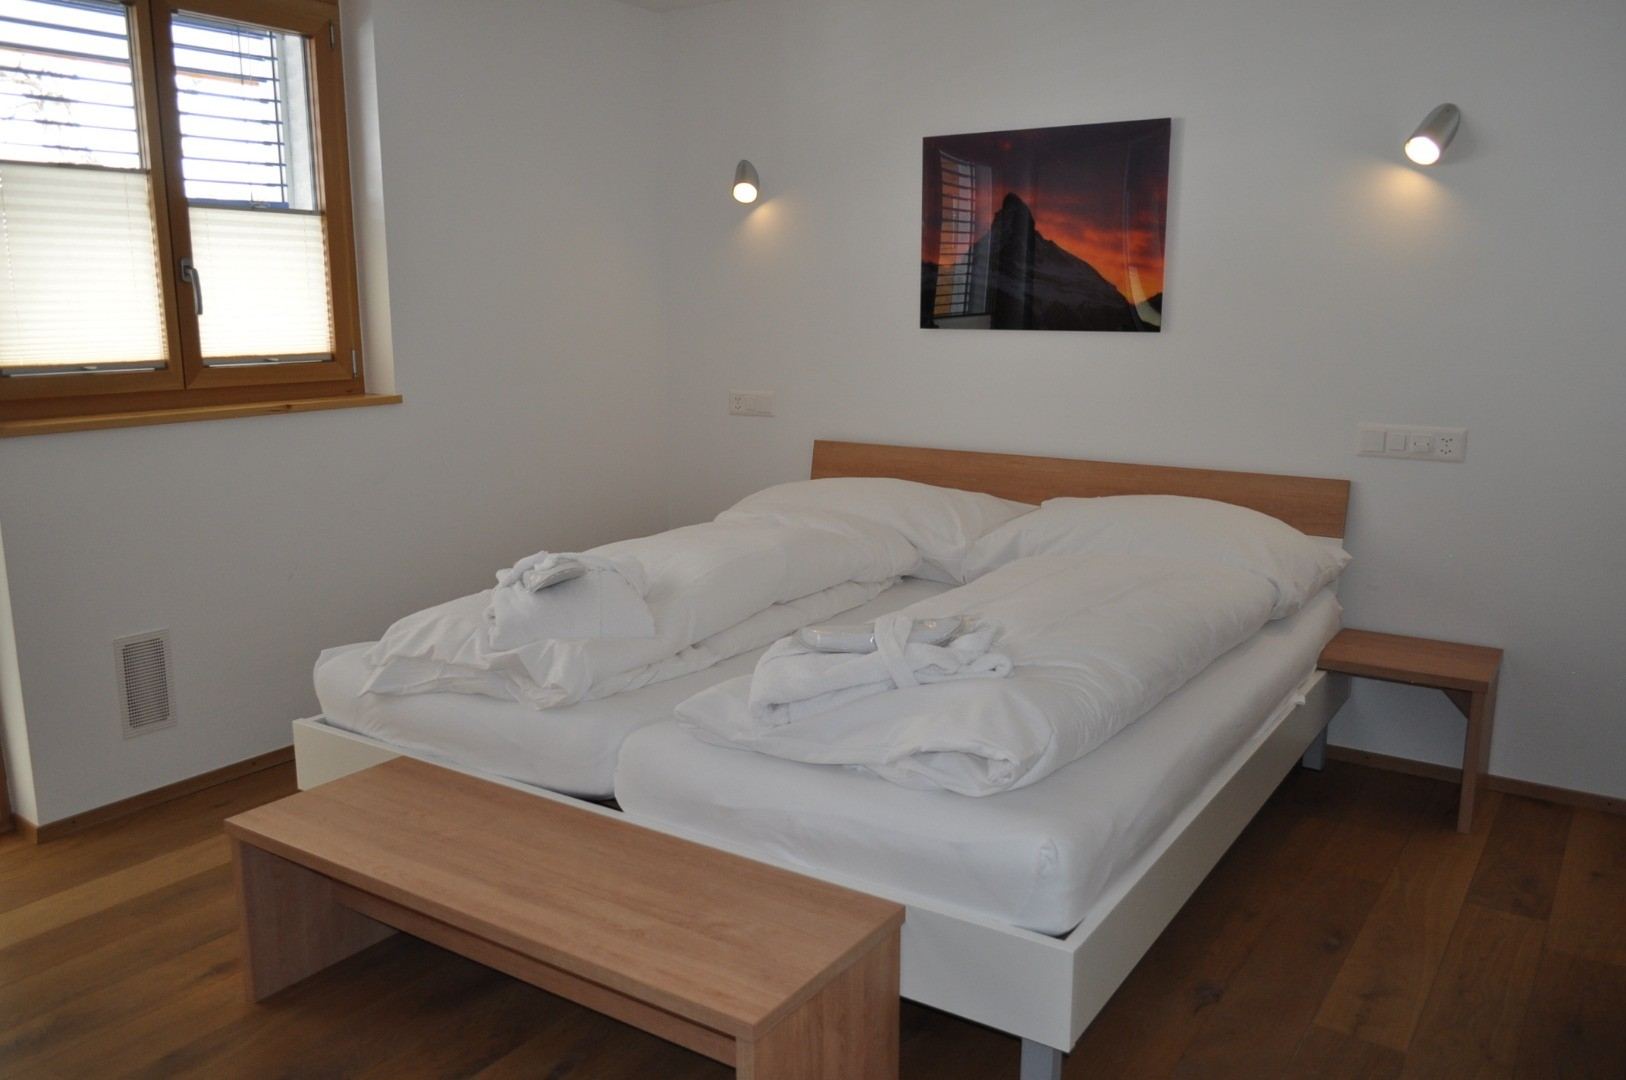 NepomukWeisshornBedroom4.JPG